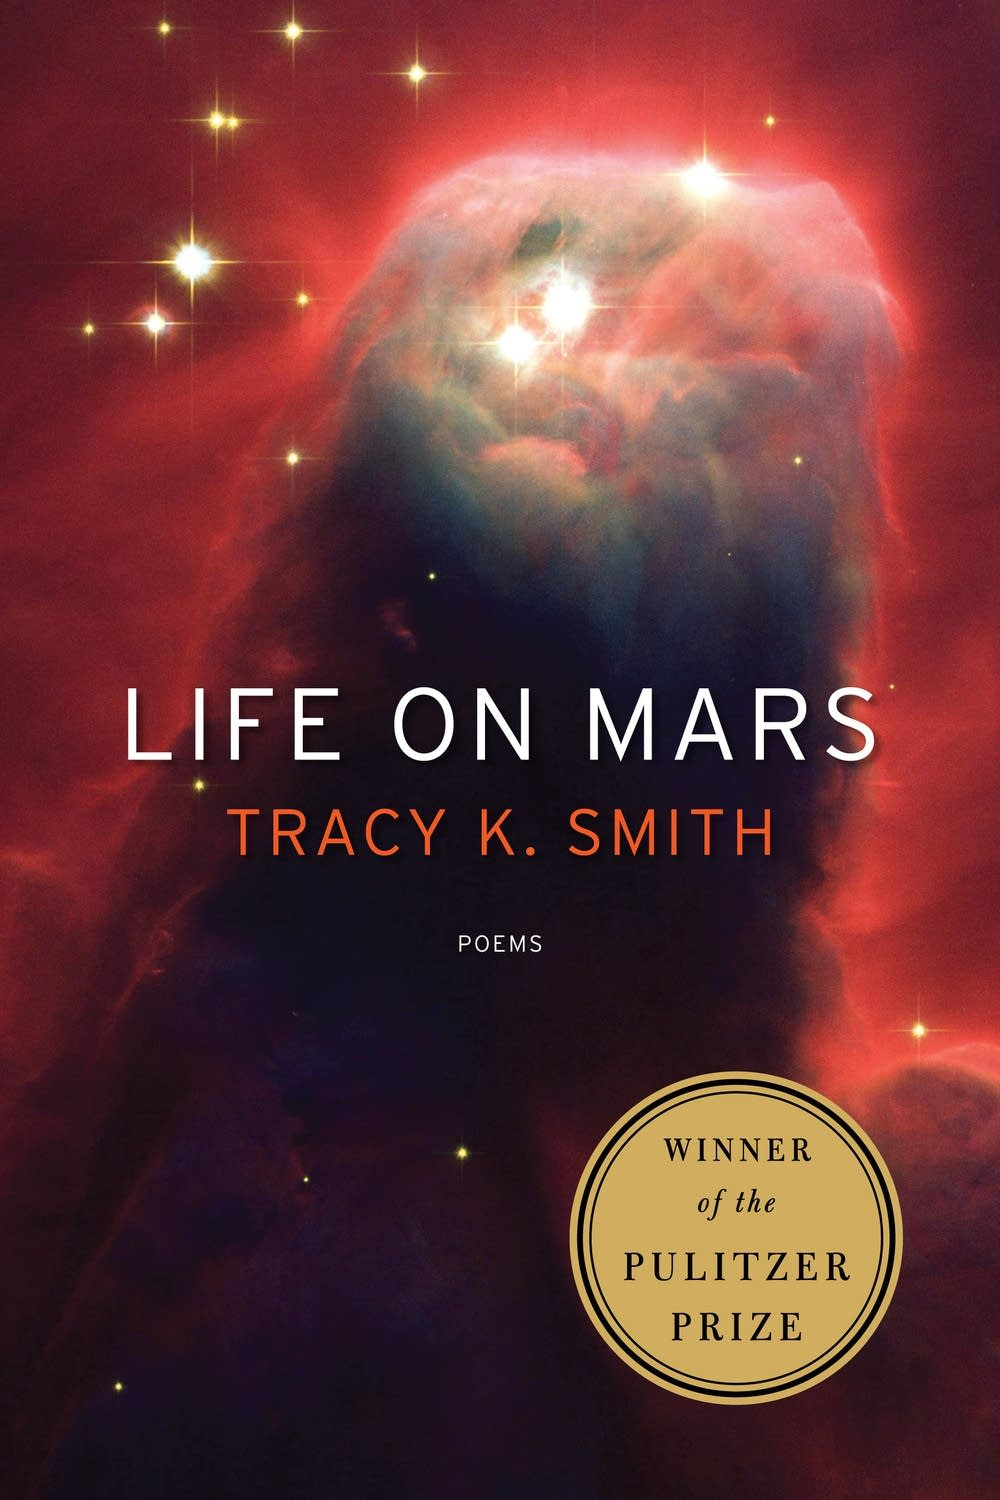 'Life on Mars' by Tracy K. Smith